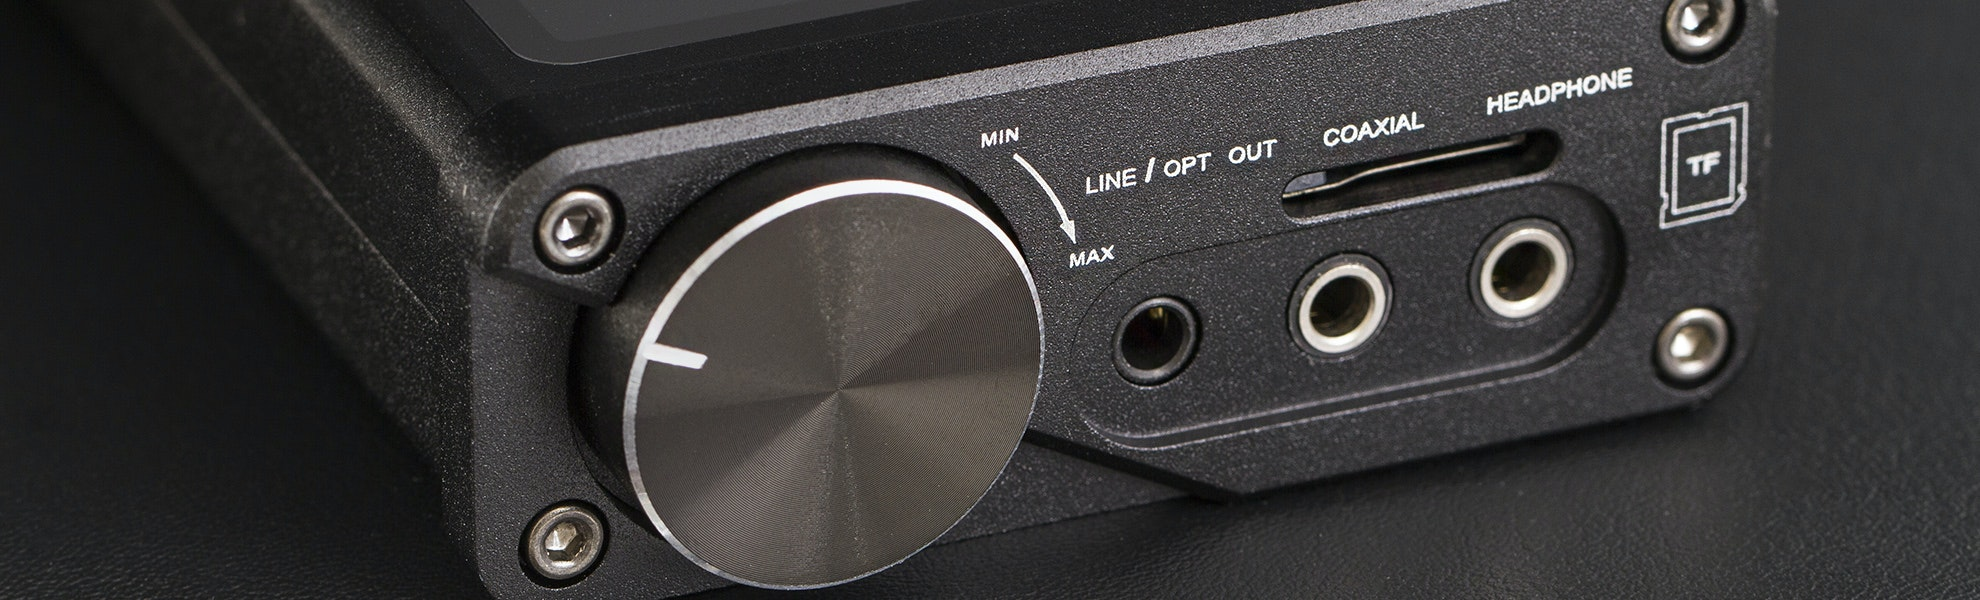 IHIFI960 Dual DAC Audiophile Player